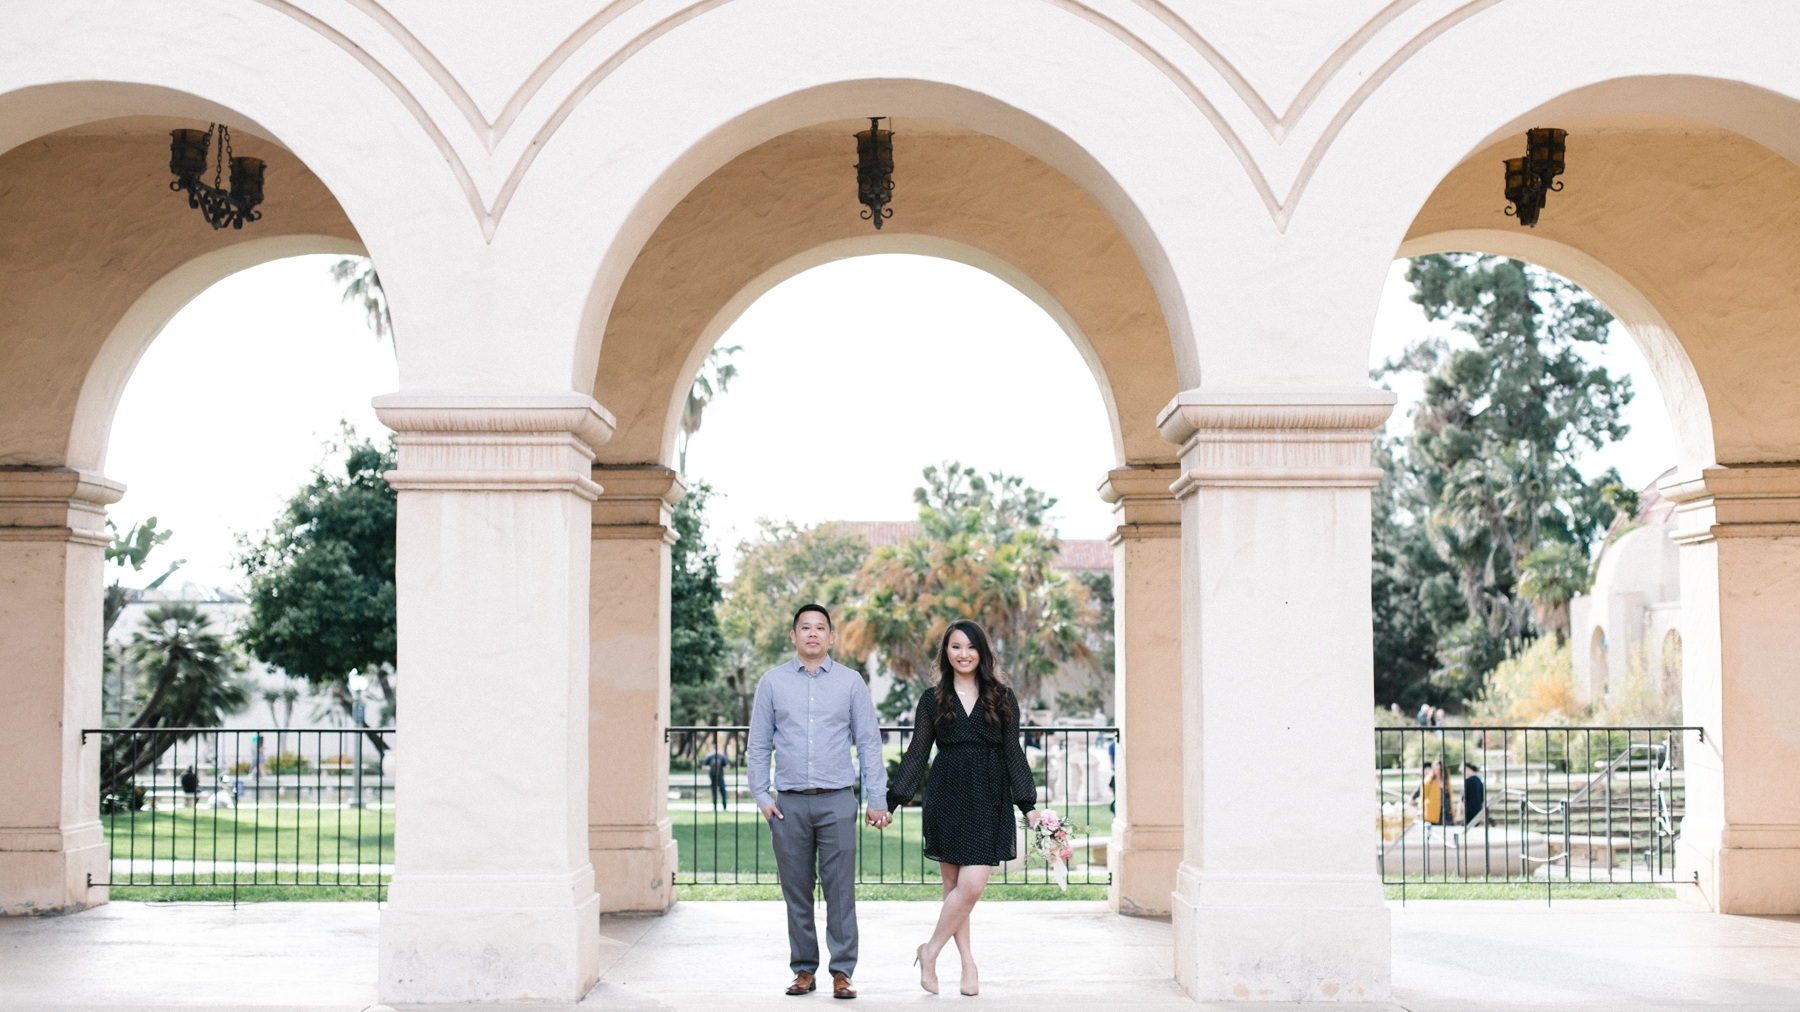 Tiffany and Erick's Balboa Park and Coronado Engagement Session Great Woodland Photography-19.jpg